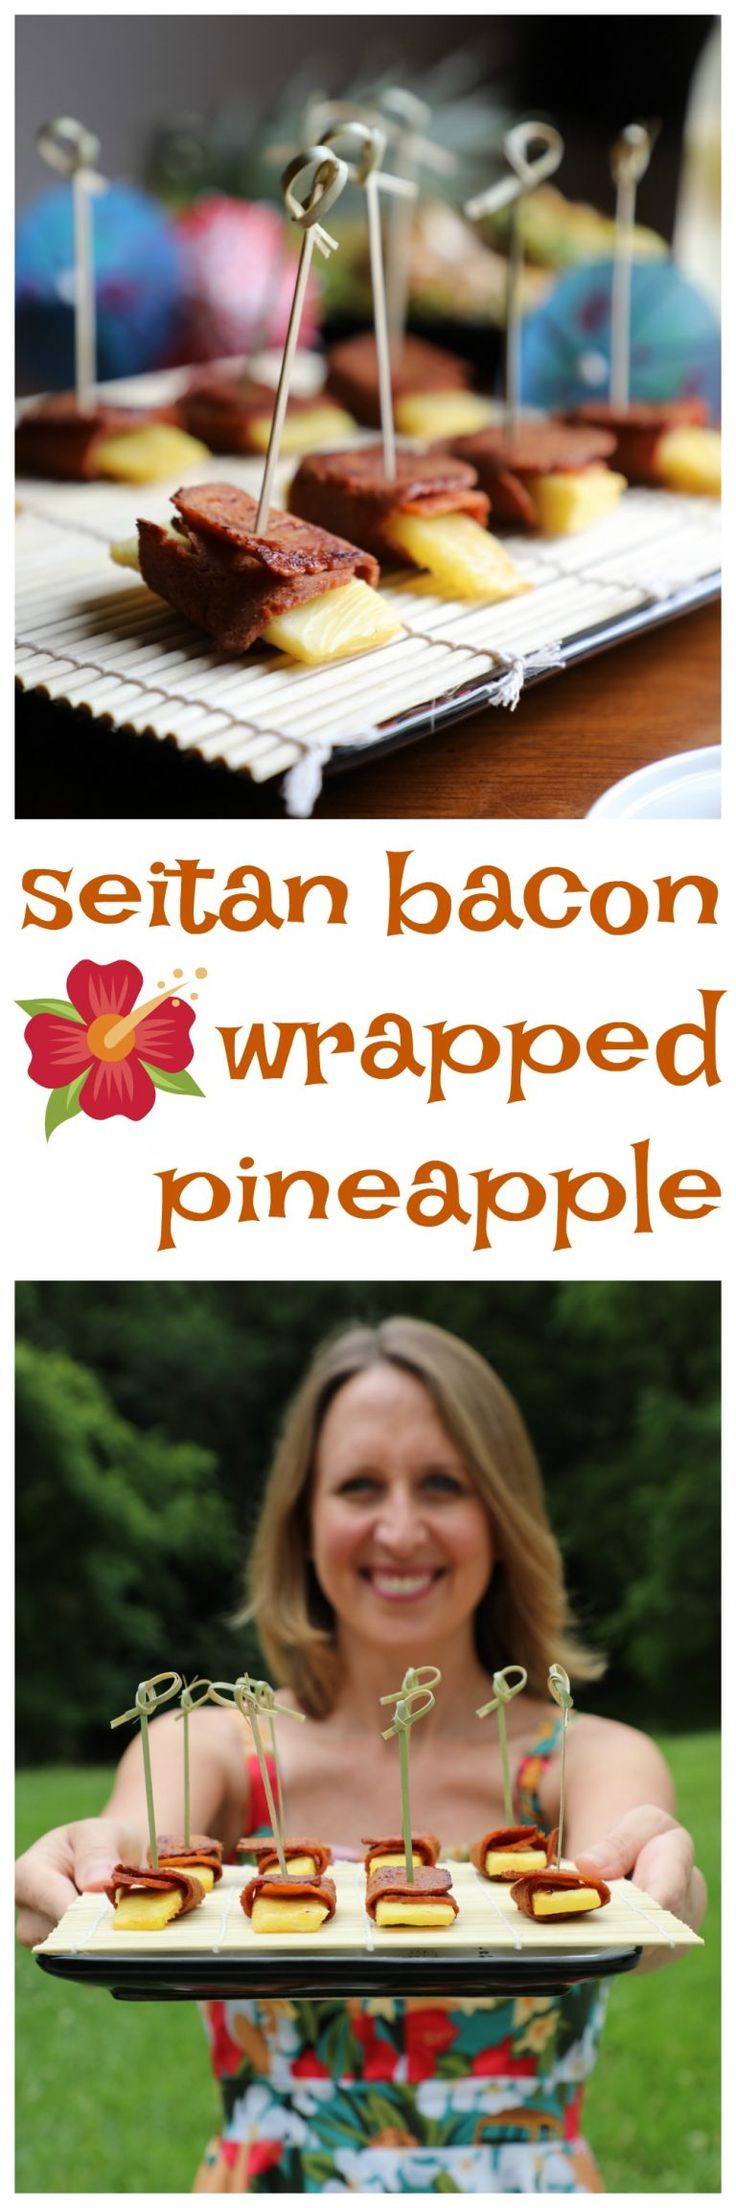 Everything you need for a tiki party! Cocktails, appetzers, and vegan seitan bacon wrapped pineapple.